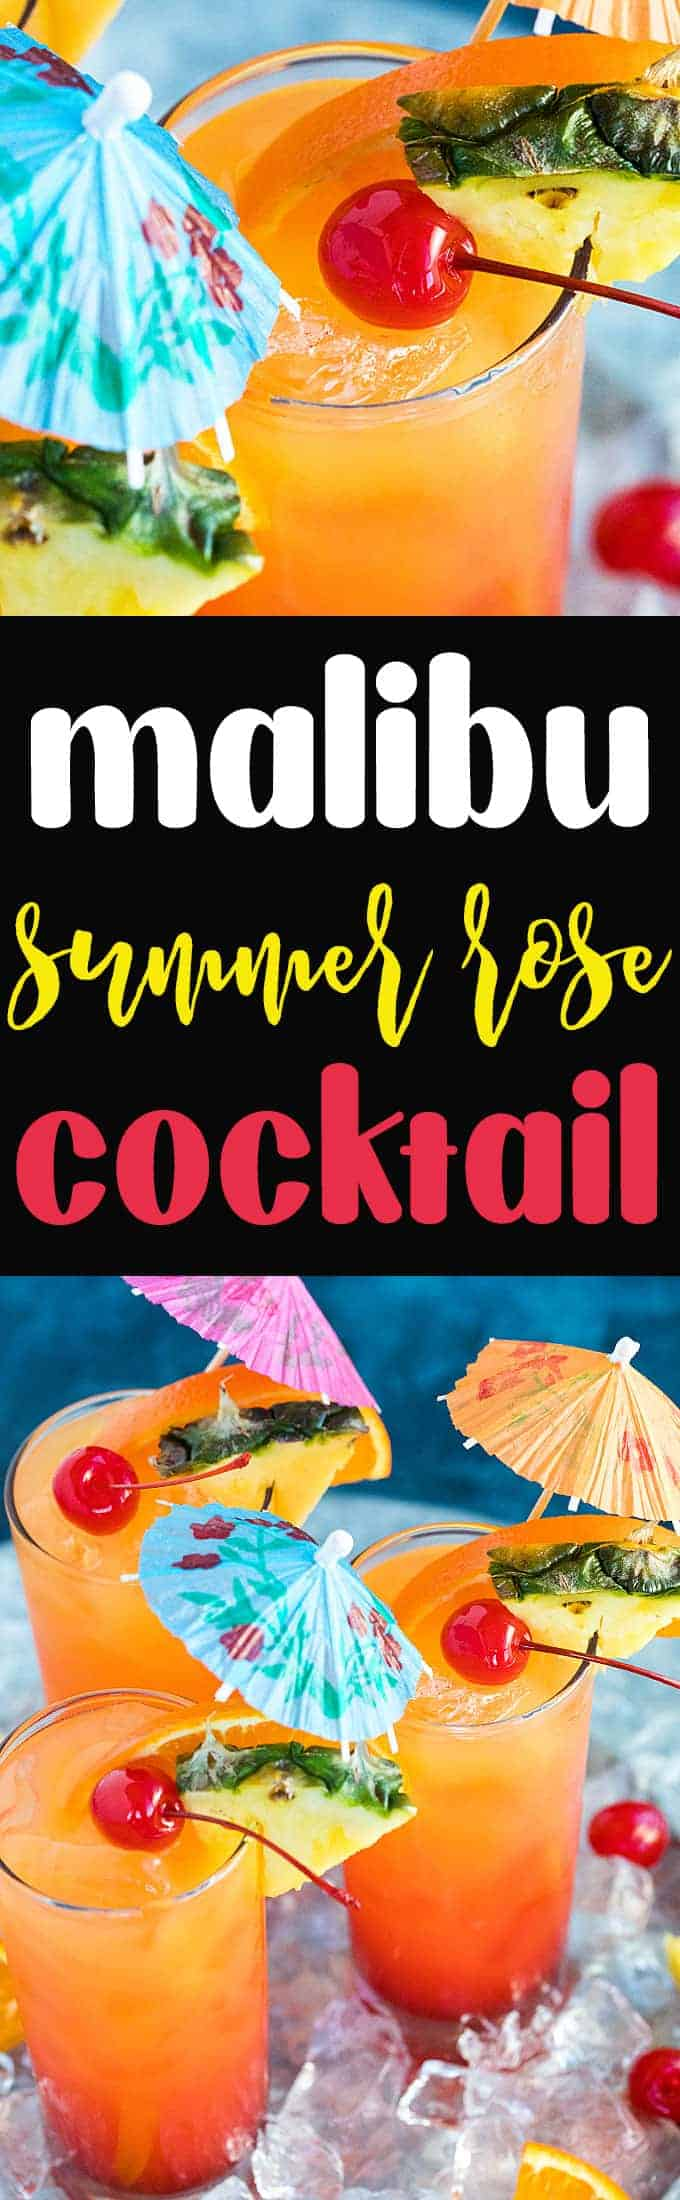 Malibu Summer Rose Cocktail - Coconut rum, peach schnapps, pineapple juice, orange juice and grenadine come together in one of the most amazing cocktails you'll ever drink!